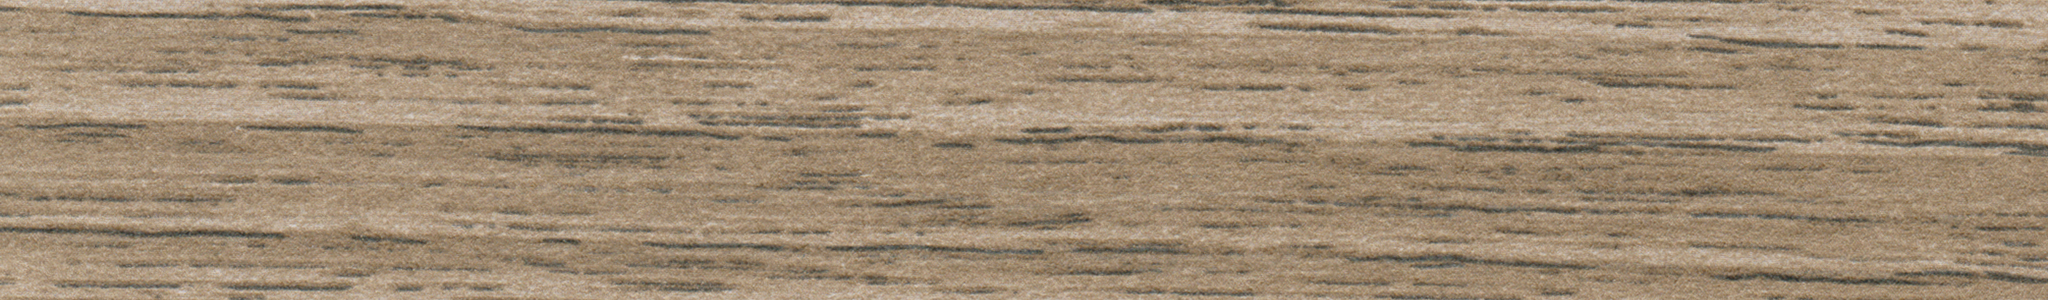 HD 68454 Melamine Edge FALZ Walnut Lyon